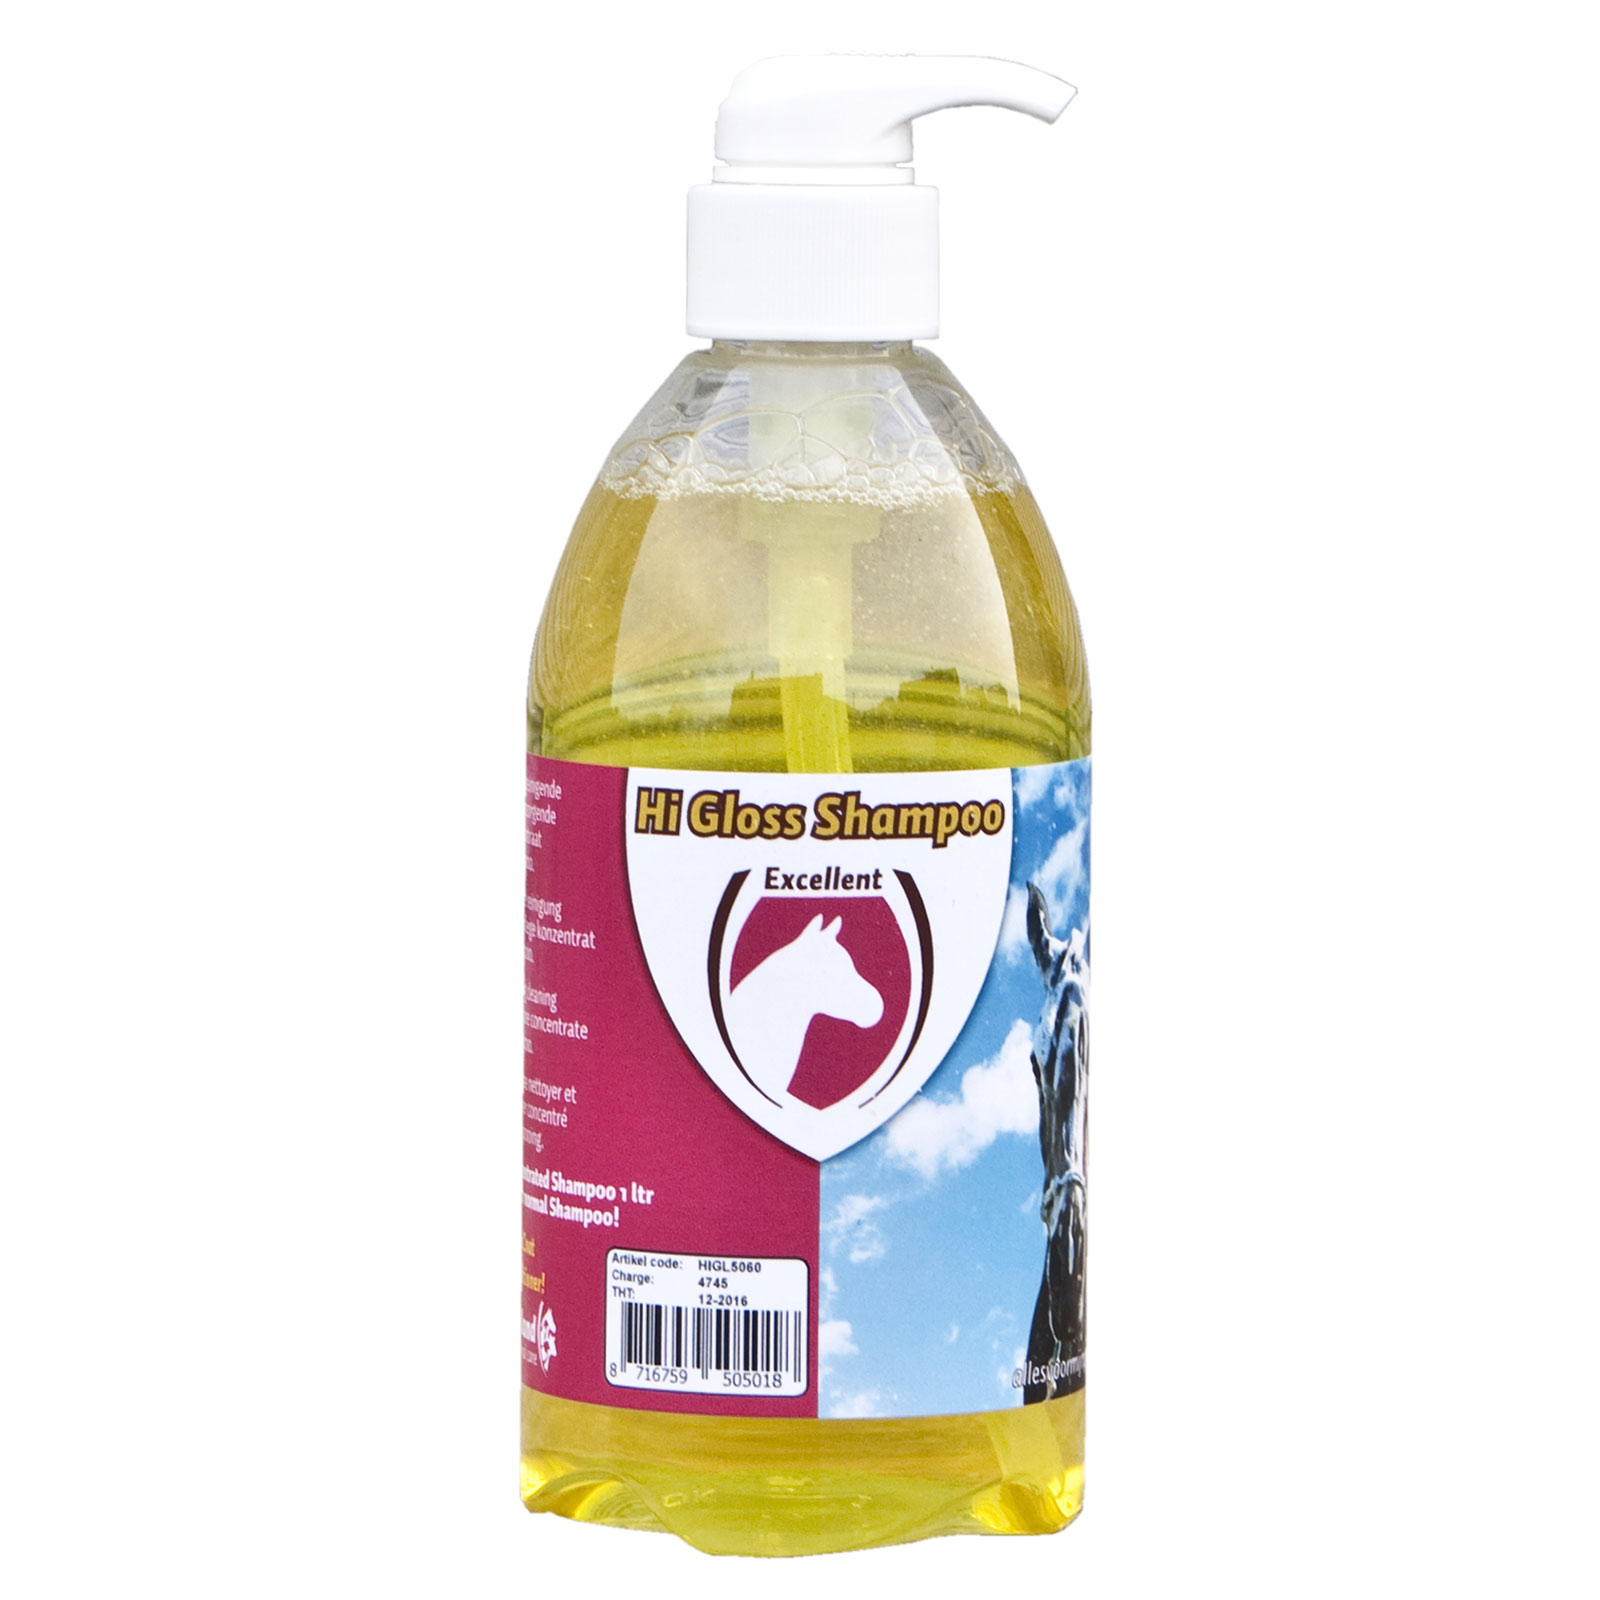 Holland Animal Care Hi Gloss Shampoo